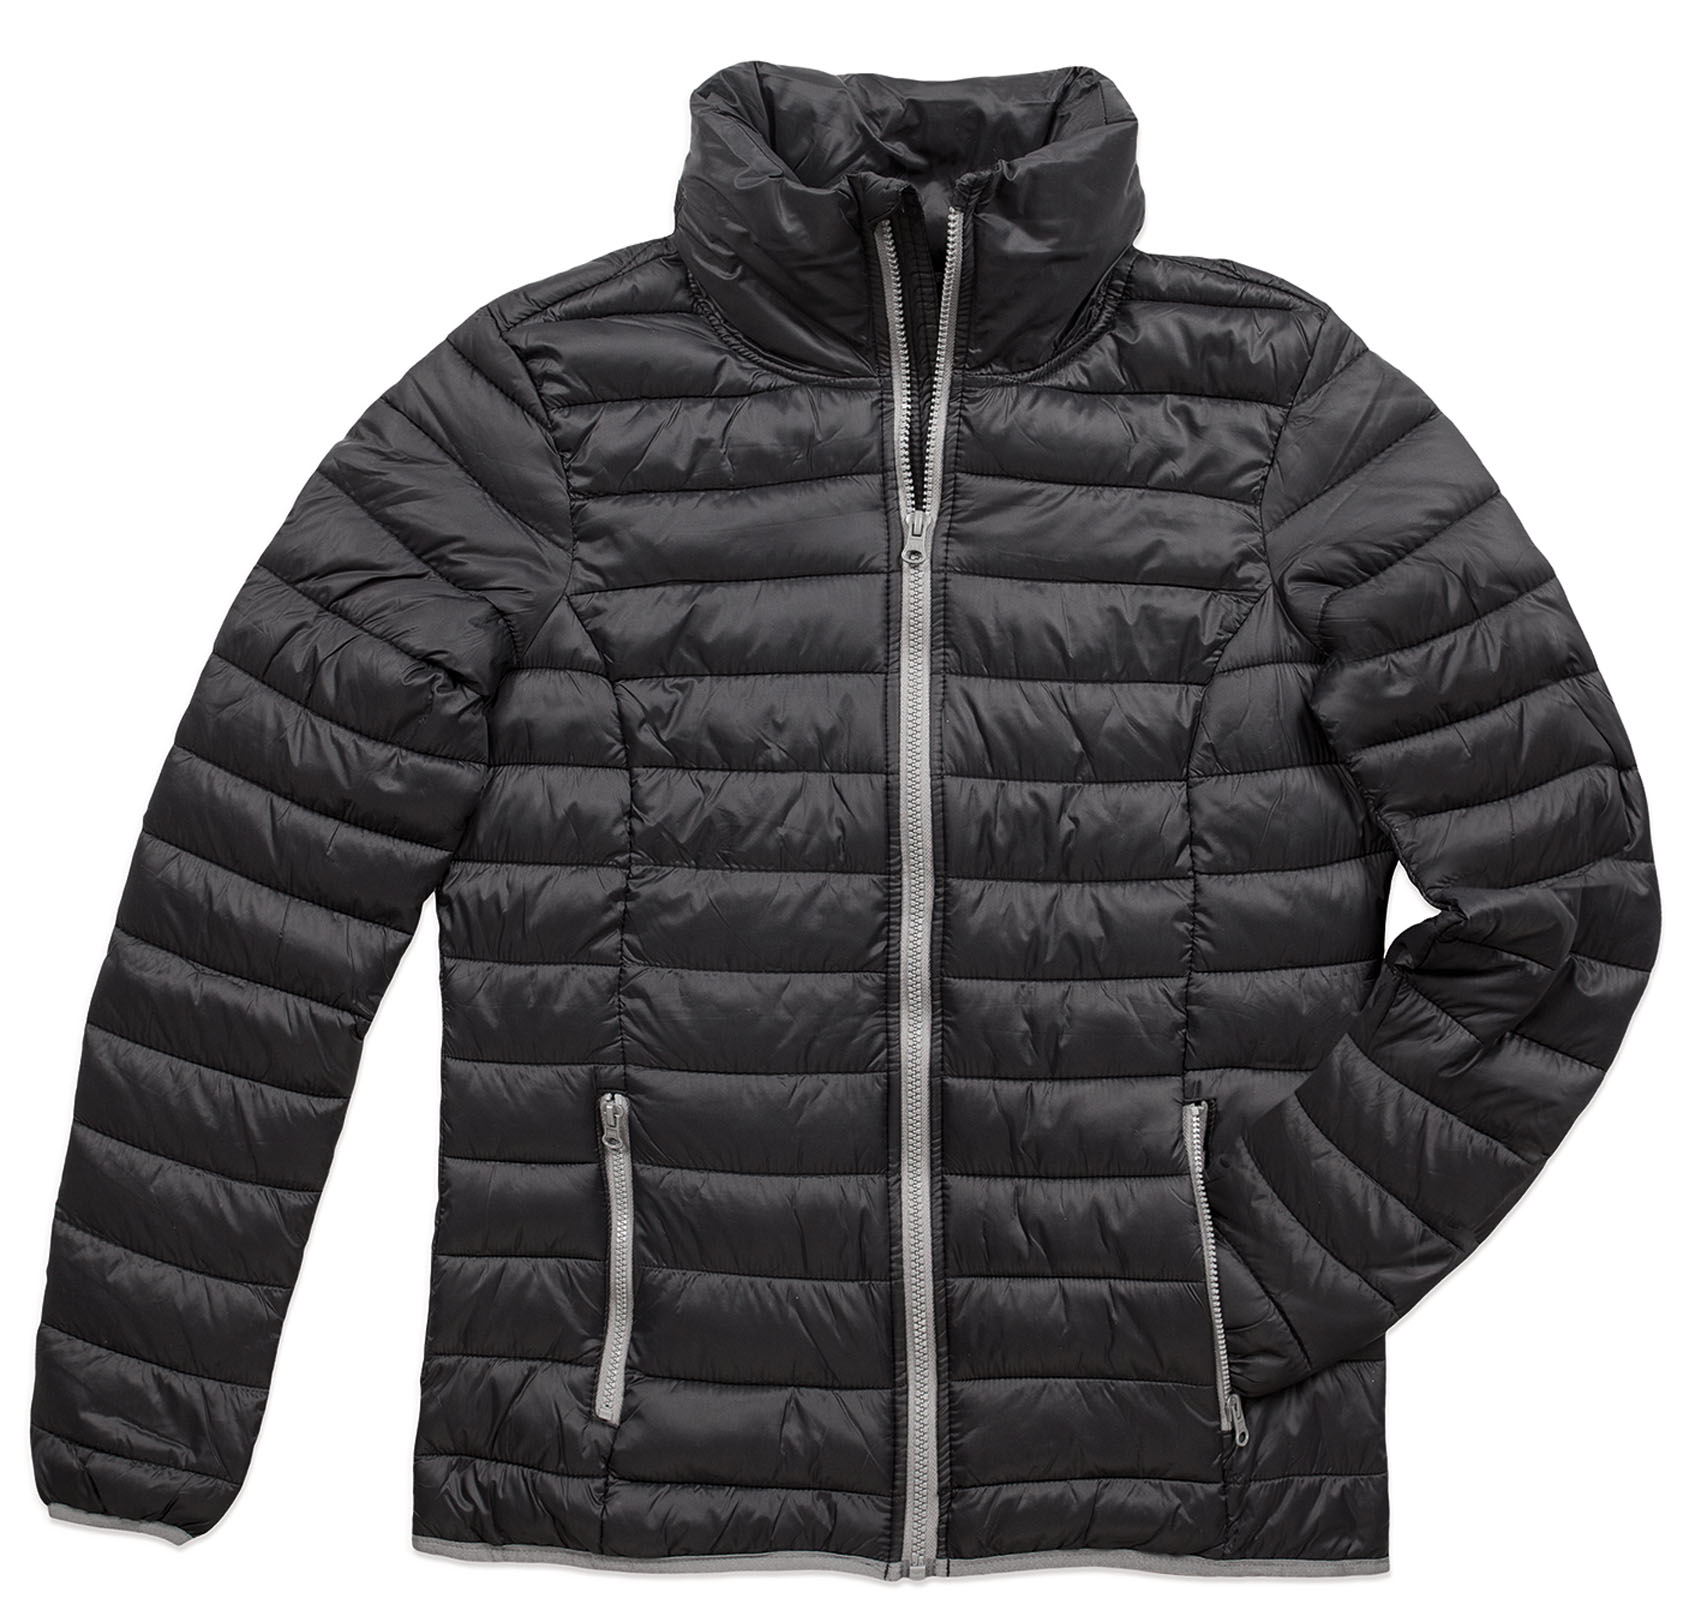 Stedman Padded Jacket Active for him